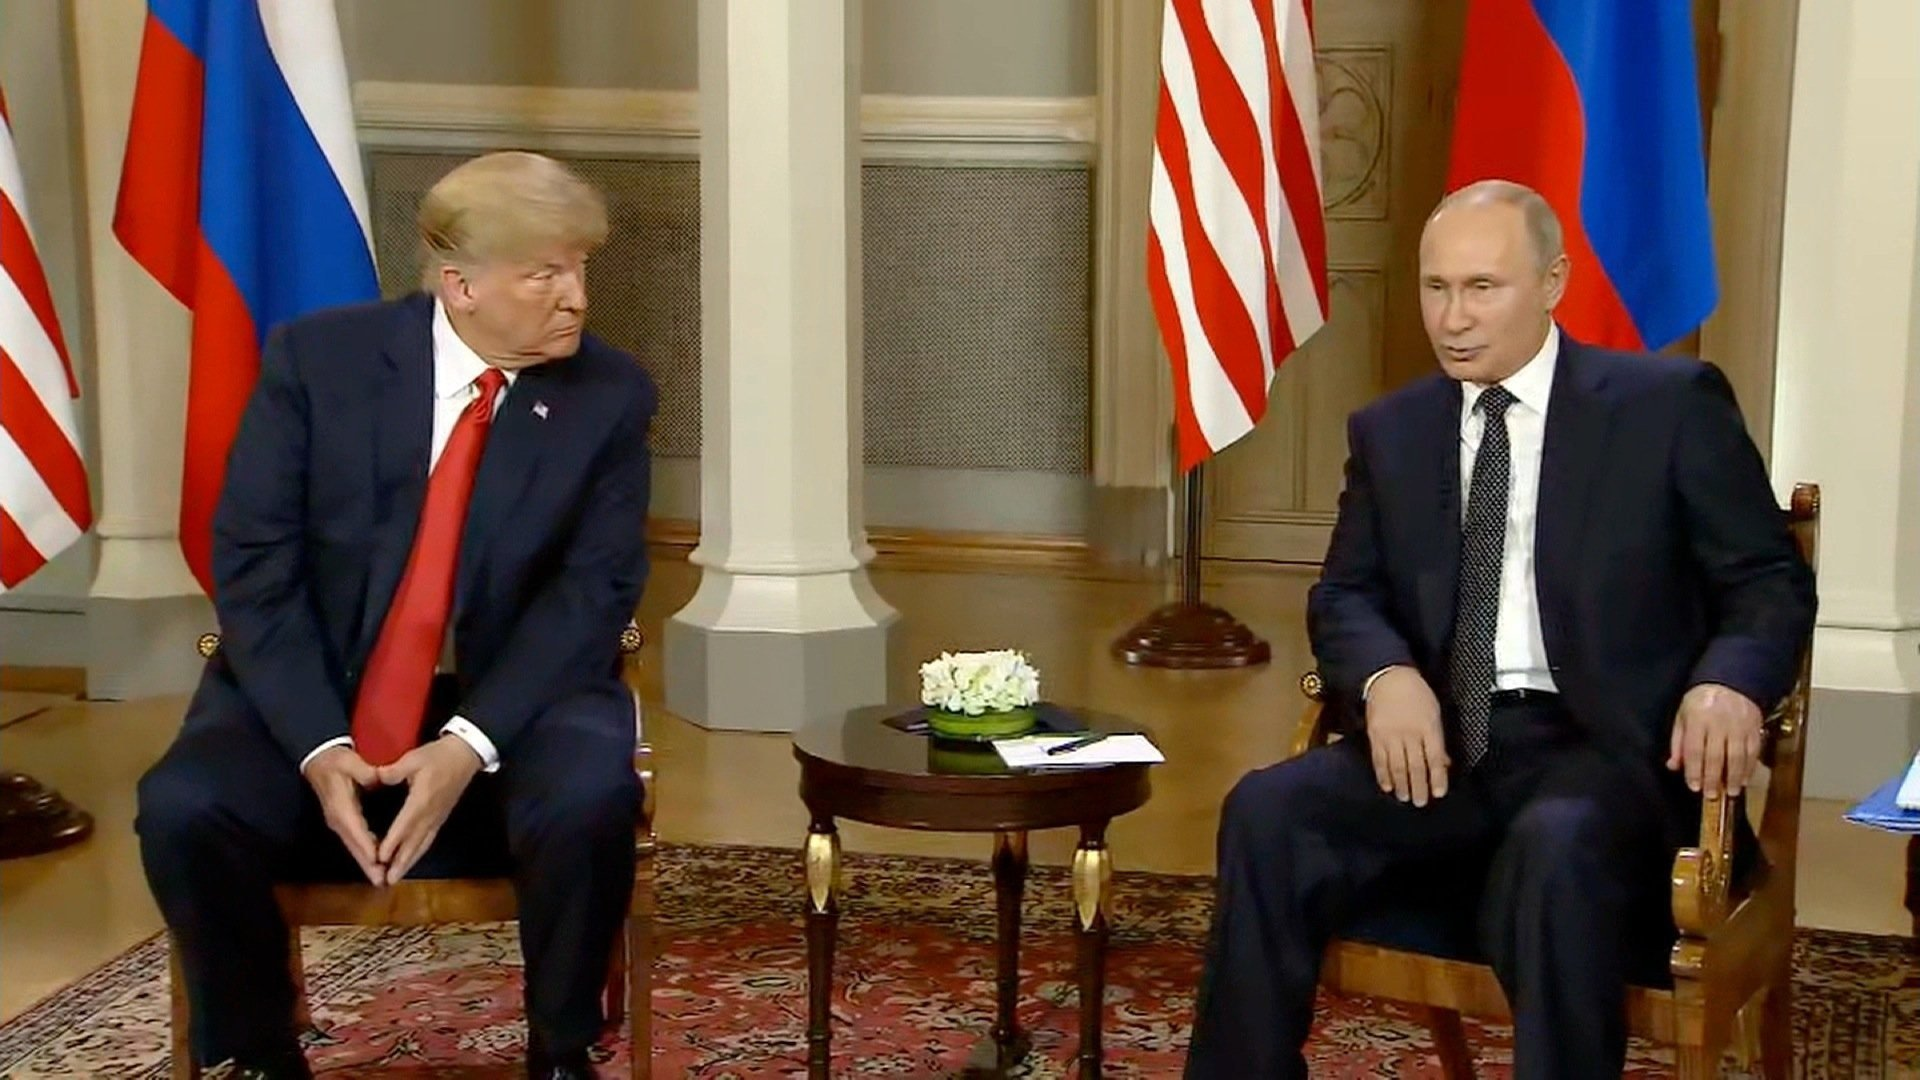 Side by side, Trump, Putin stress 'no collusion'